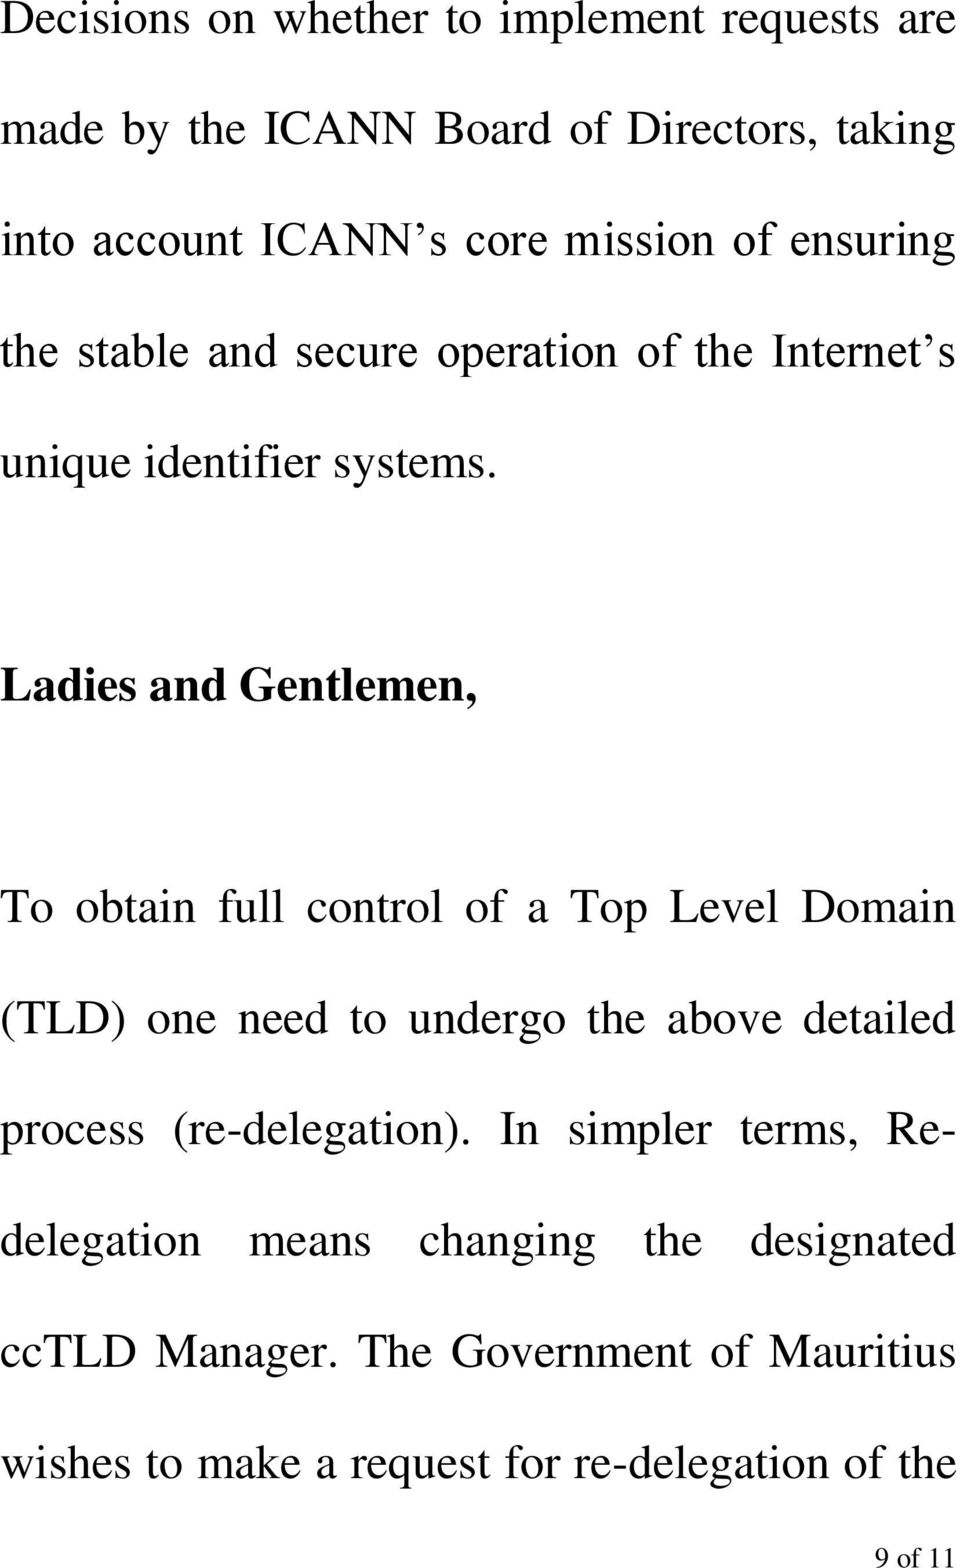 Ladies and Gentlemen, To obtain full control of a Top Level Domain (TLD) one need to undergo the above detailed process